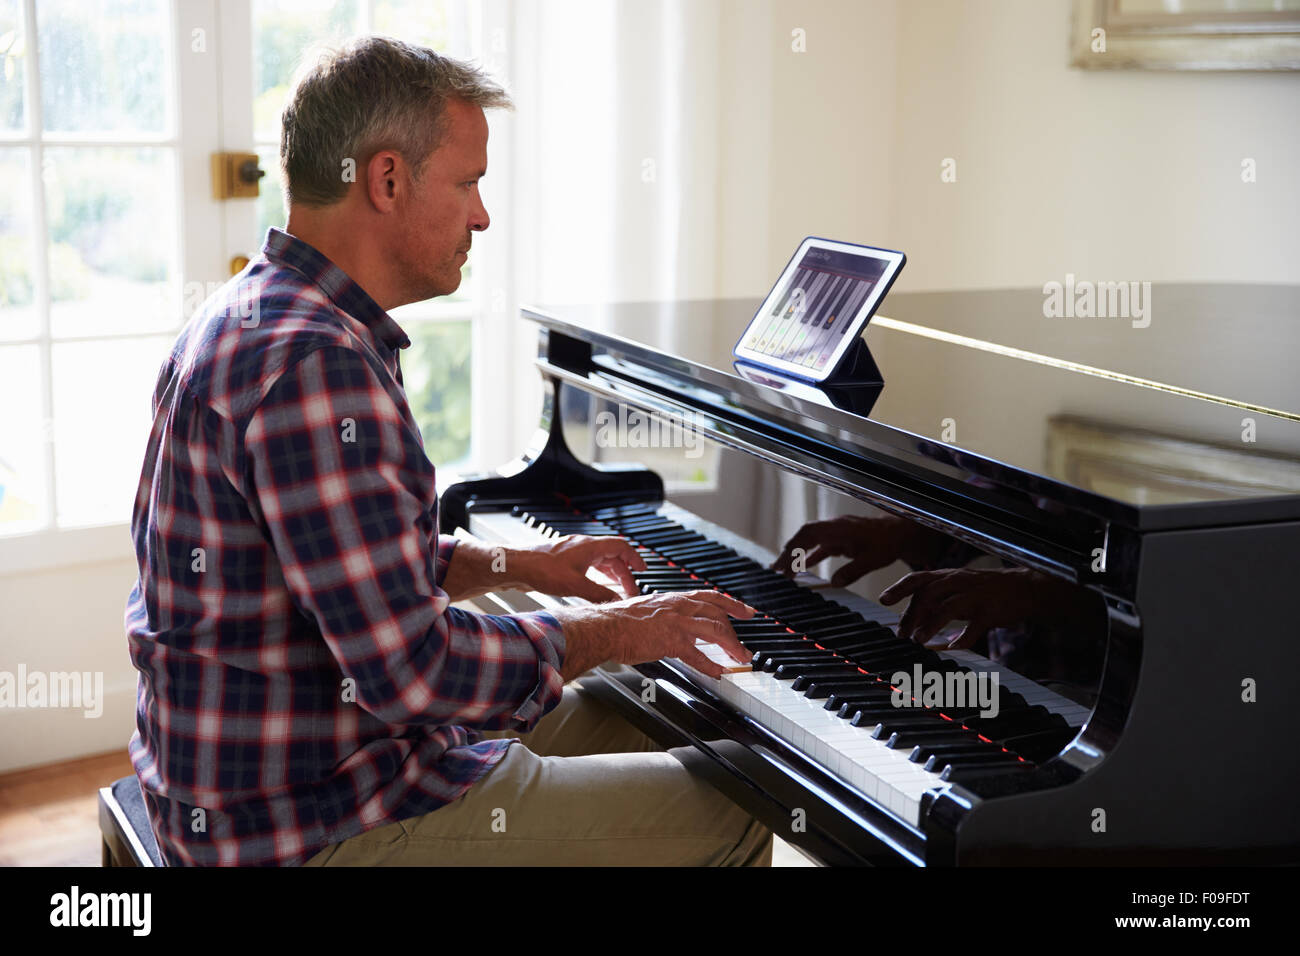 Man Learning To Play Piano Using Digital Tablet Application - Stock Image